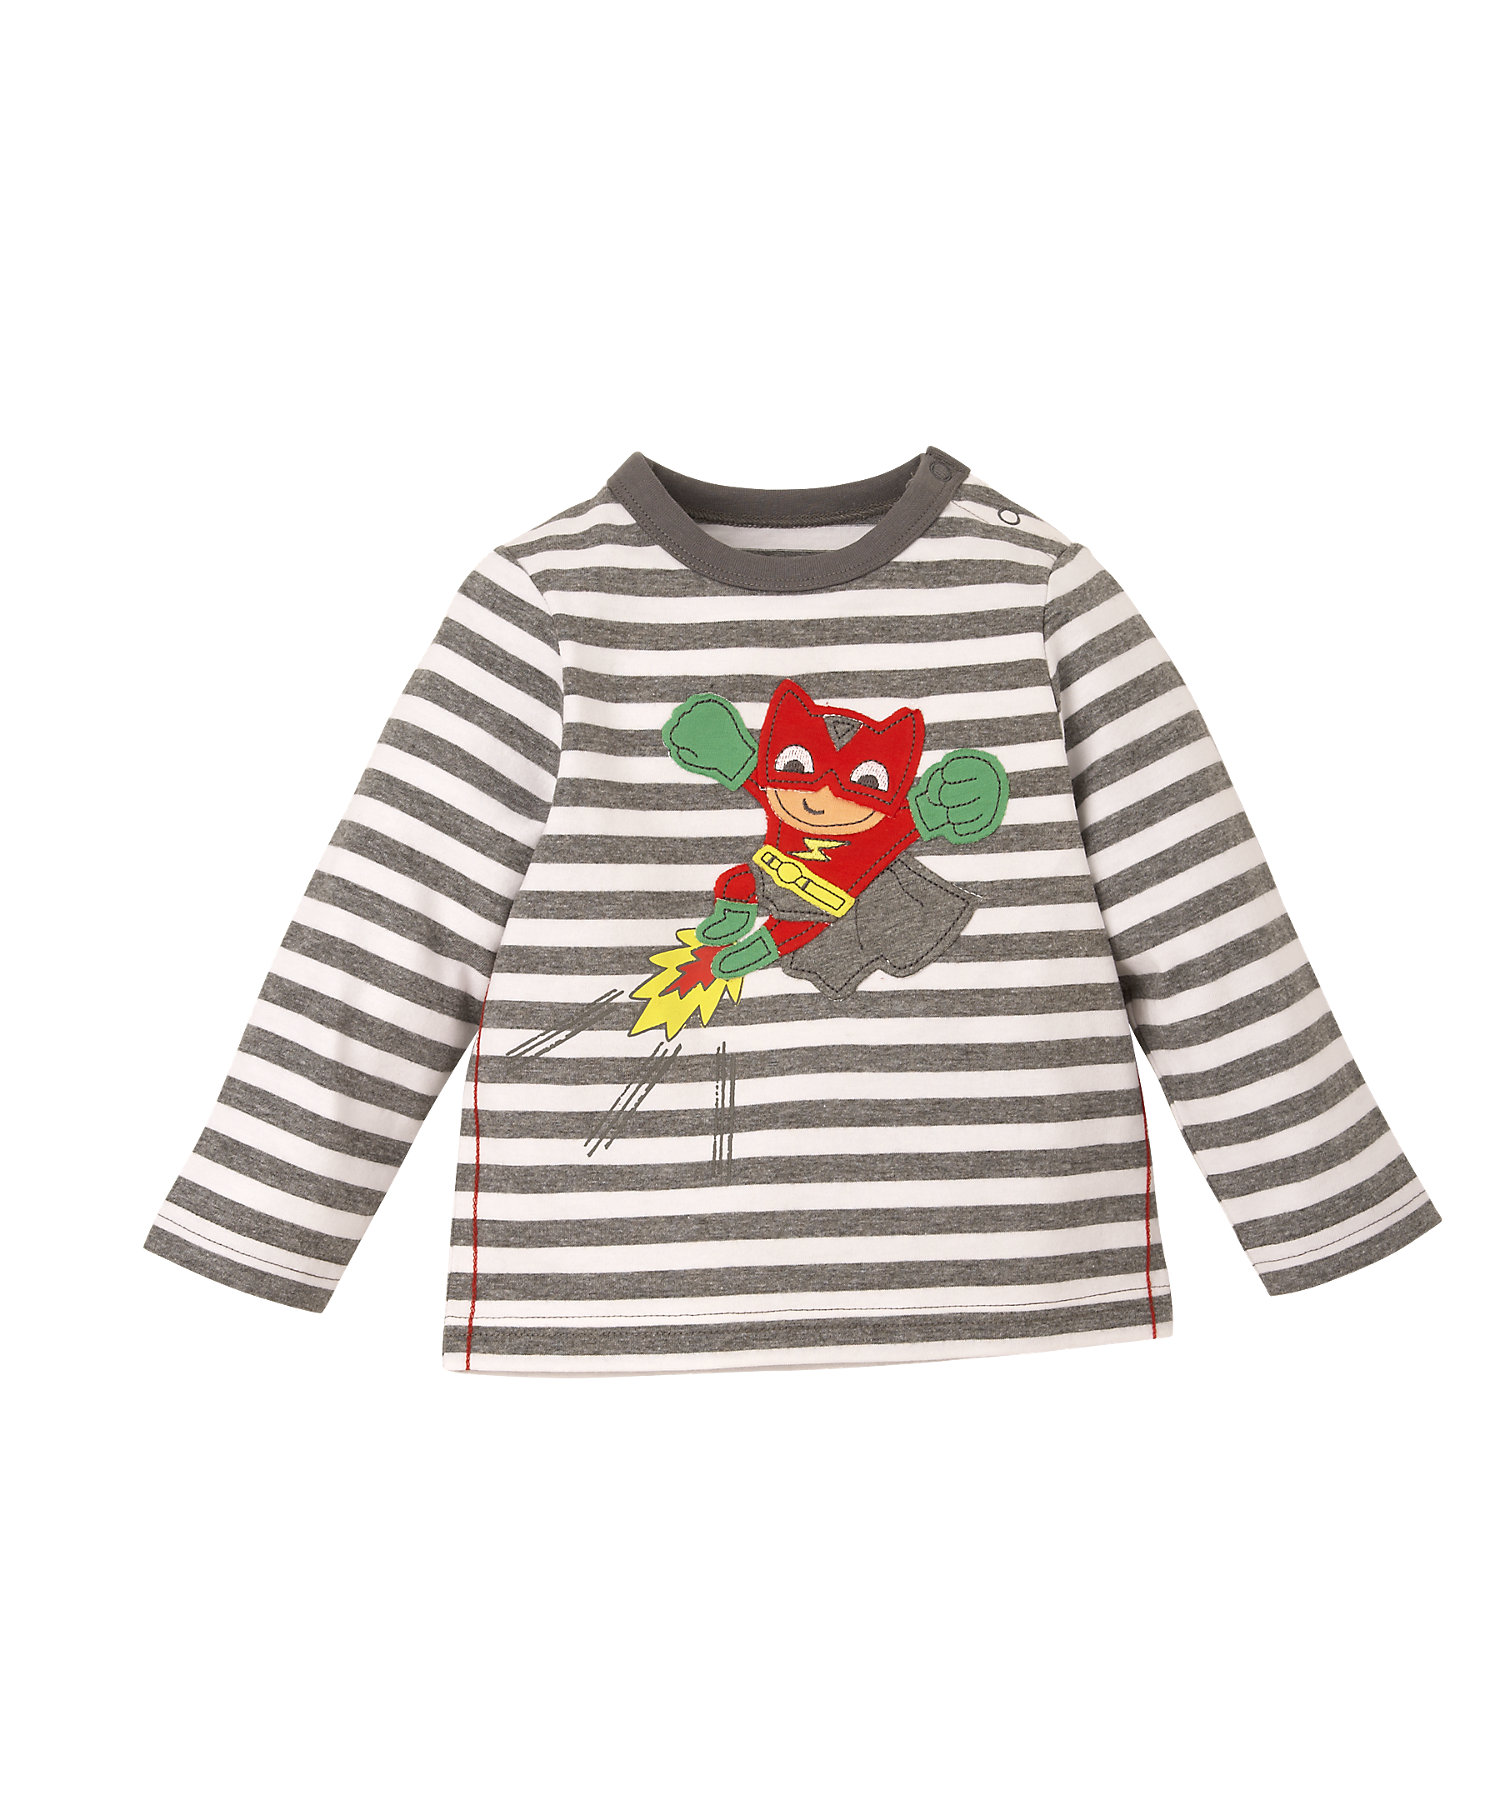 Mothercare | Boys Full Sleeves T-Shirt Super Hero Patchwork - Grey